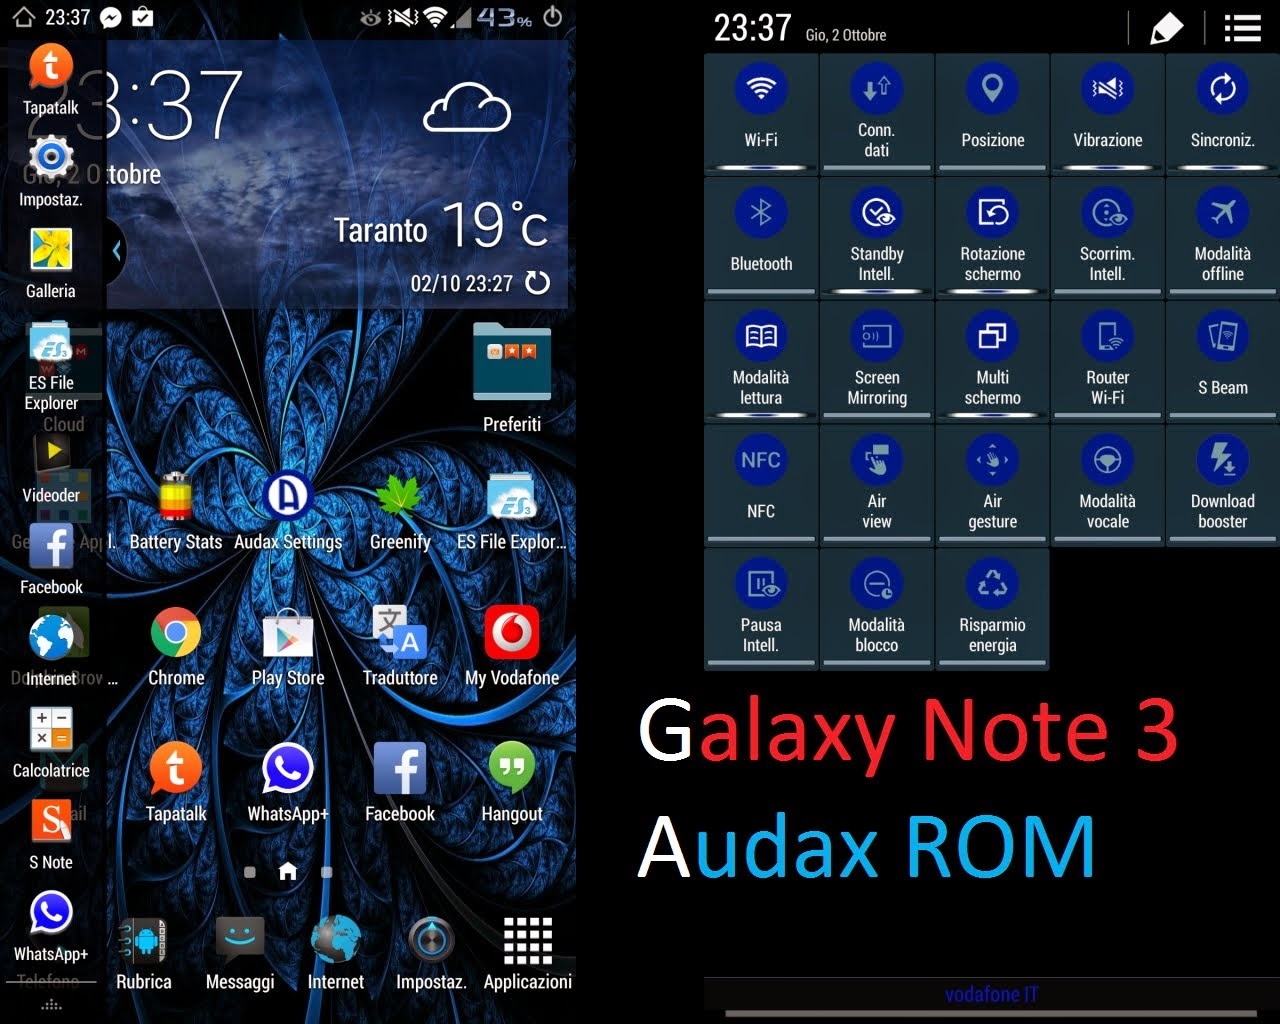 Audax L Android 5.0 Lollipop Custom ROM